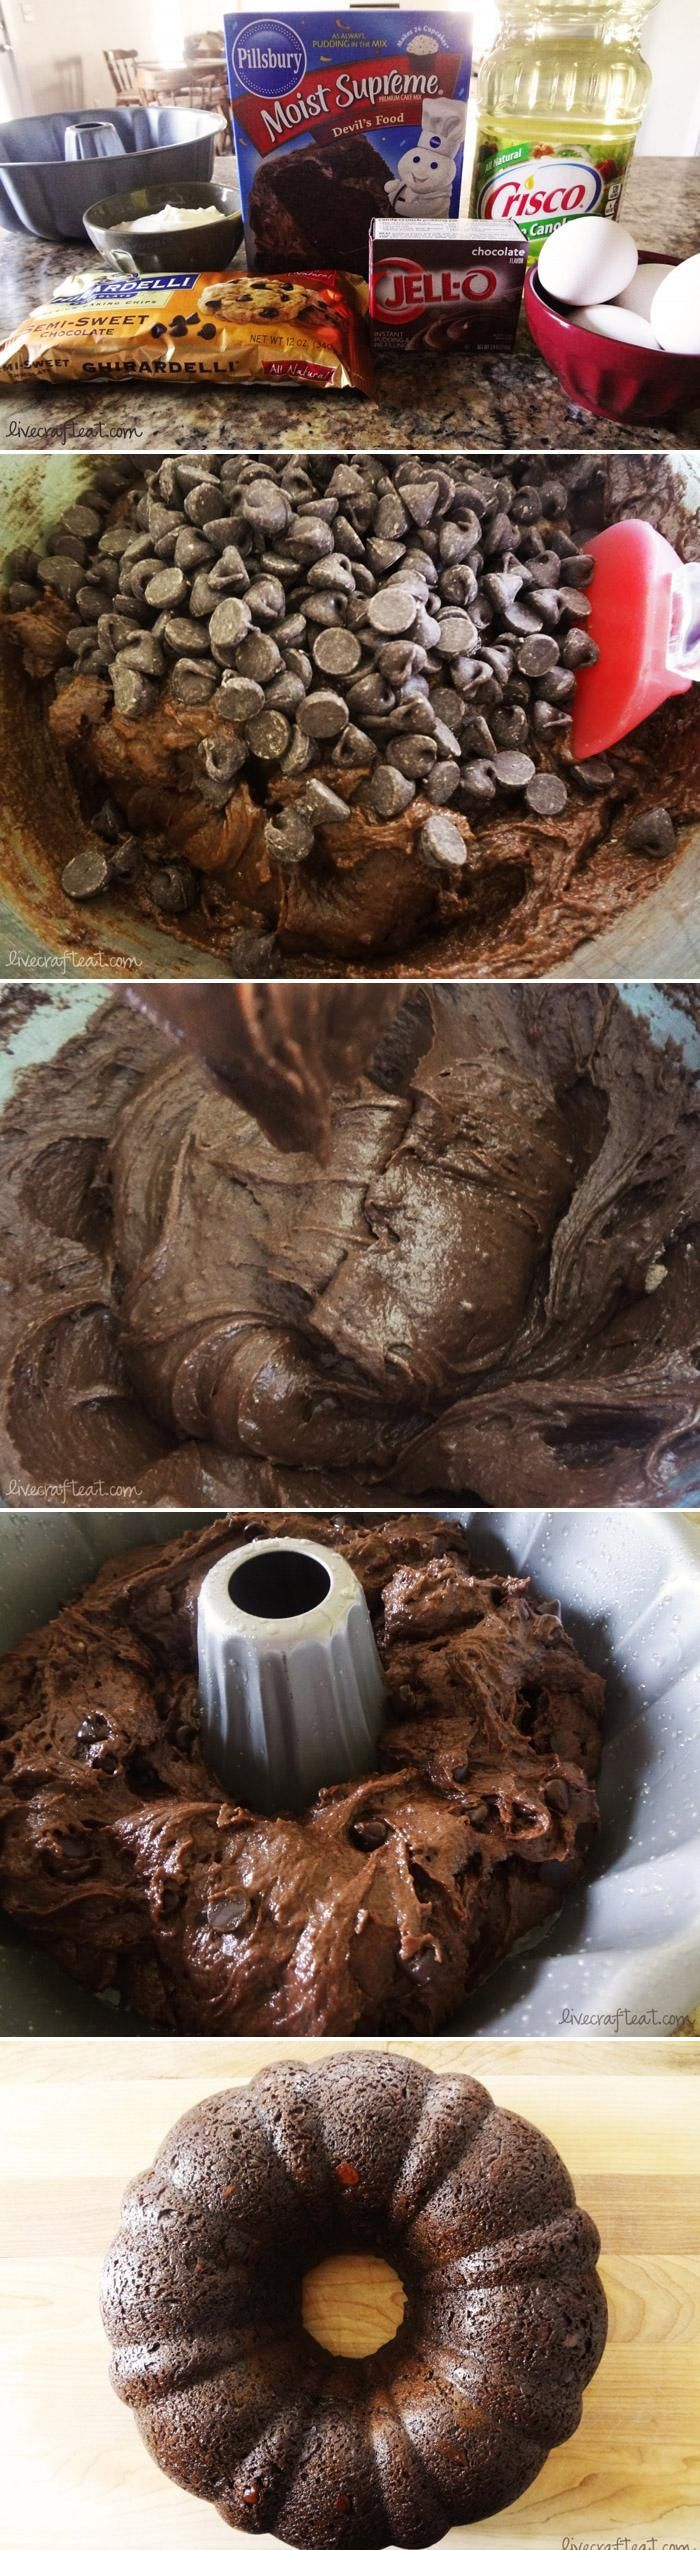 "Chocolate Bundt cake - This is my husband's absolute favorite because it is just ""chocolate bread"" with no icing! You can also vary a little less chocolatey with yellow cake mix. . . still a chocolate delight!"